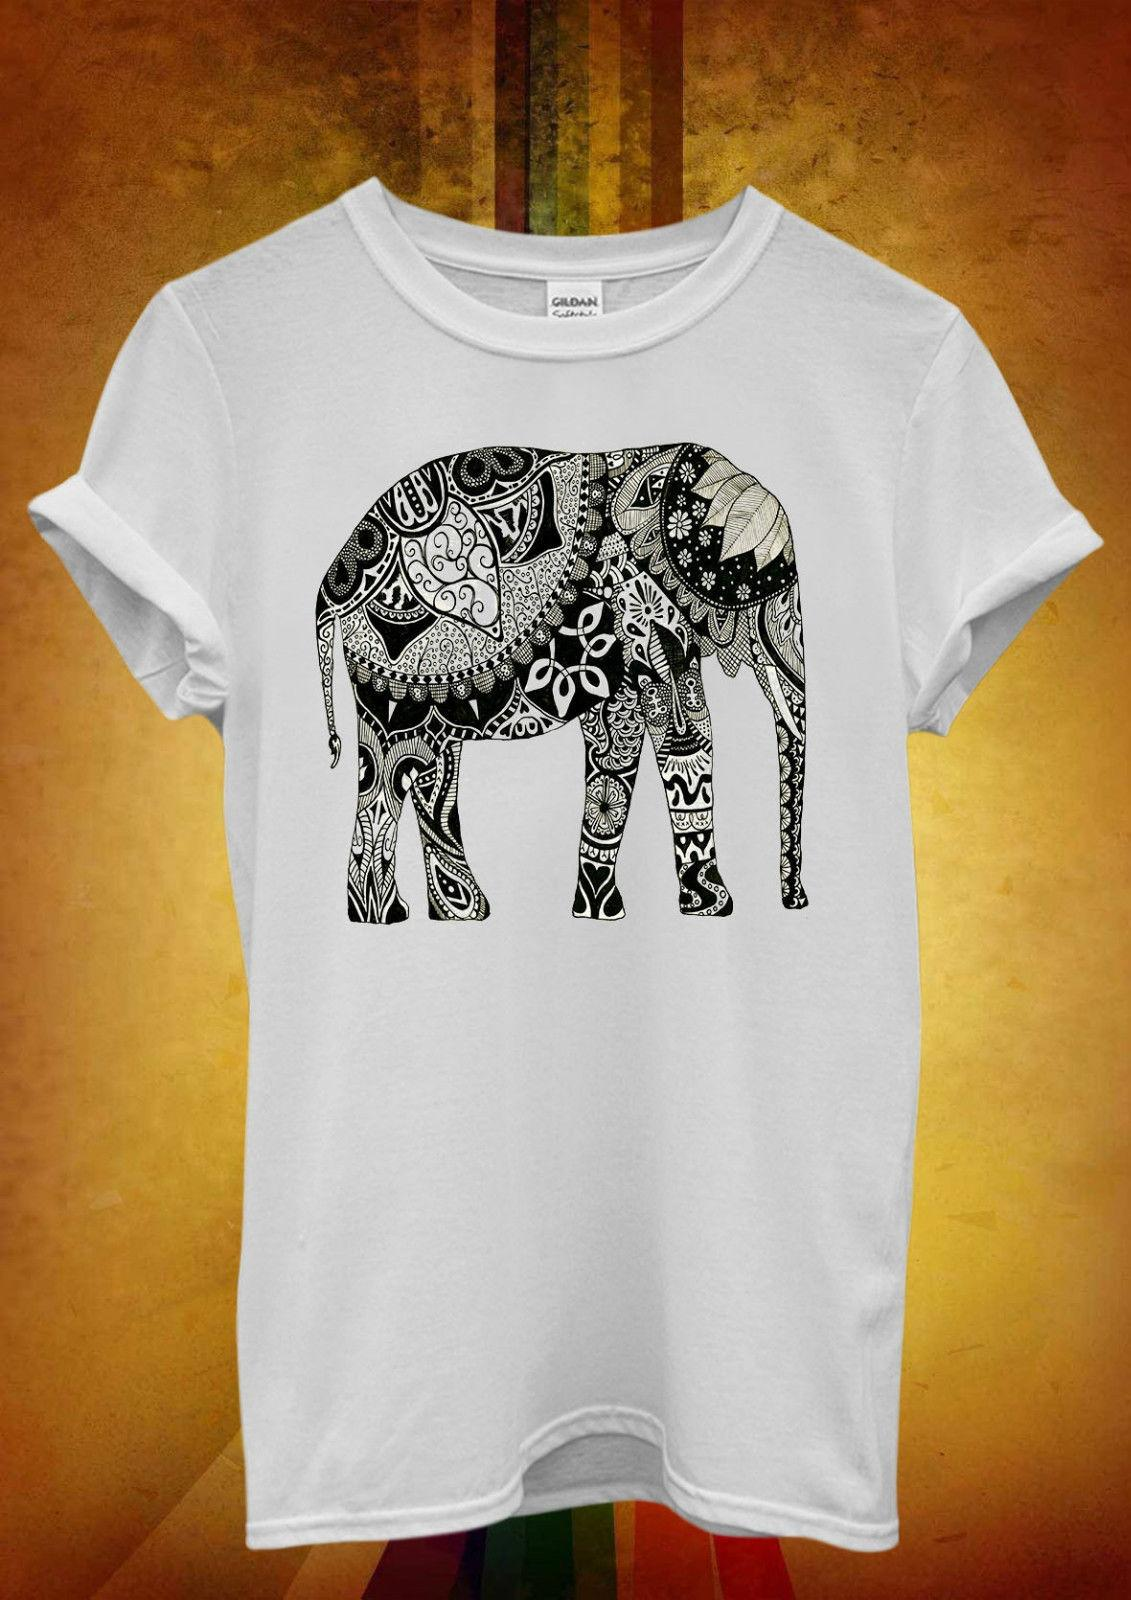 3b8edaf84a3ac Elephant Drawing Ethnic Pattern Art Men Women Unisex T Shirt Tank Top Vest  577 Funny Unisex Casual Tee Gift Top Shirts And T Shirts Buy Cool T Shirts  From ...